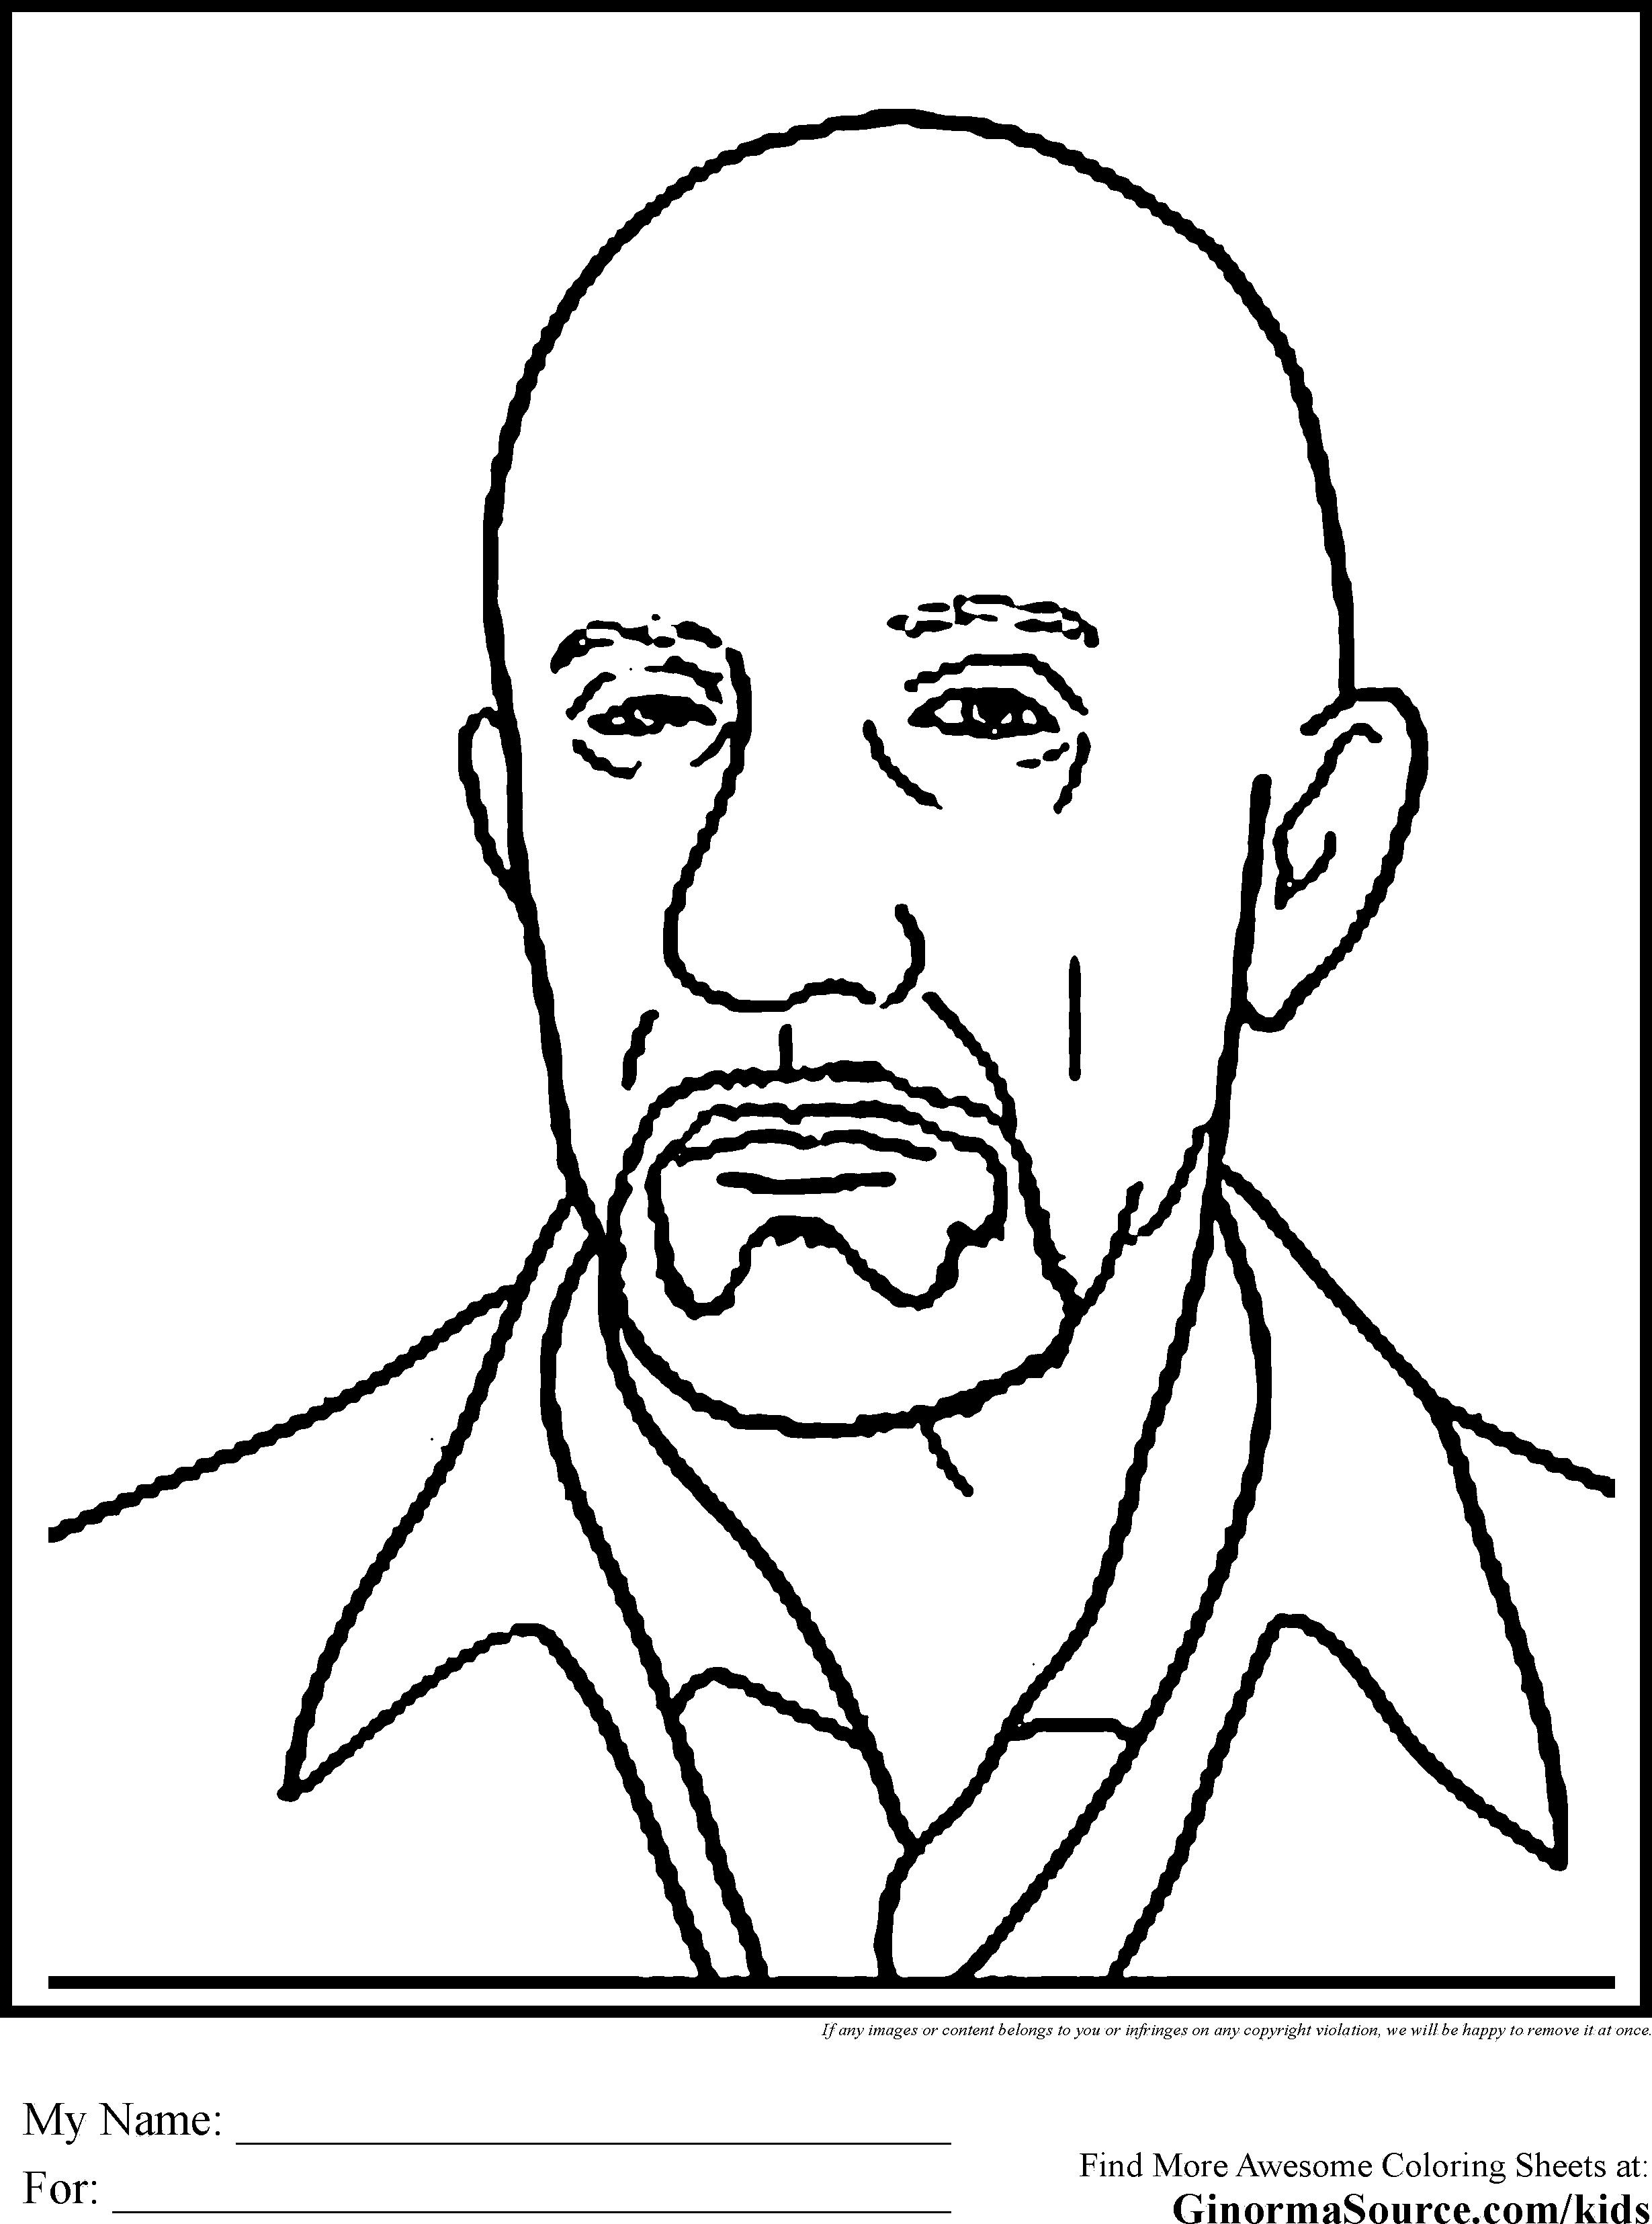 Breaking Bad Coloring Pages Brian Cranston Ginormasource Kids Coloring Pages Coloring Books Breaking Bad